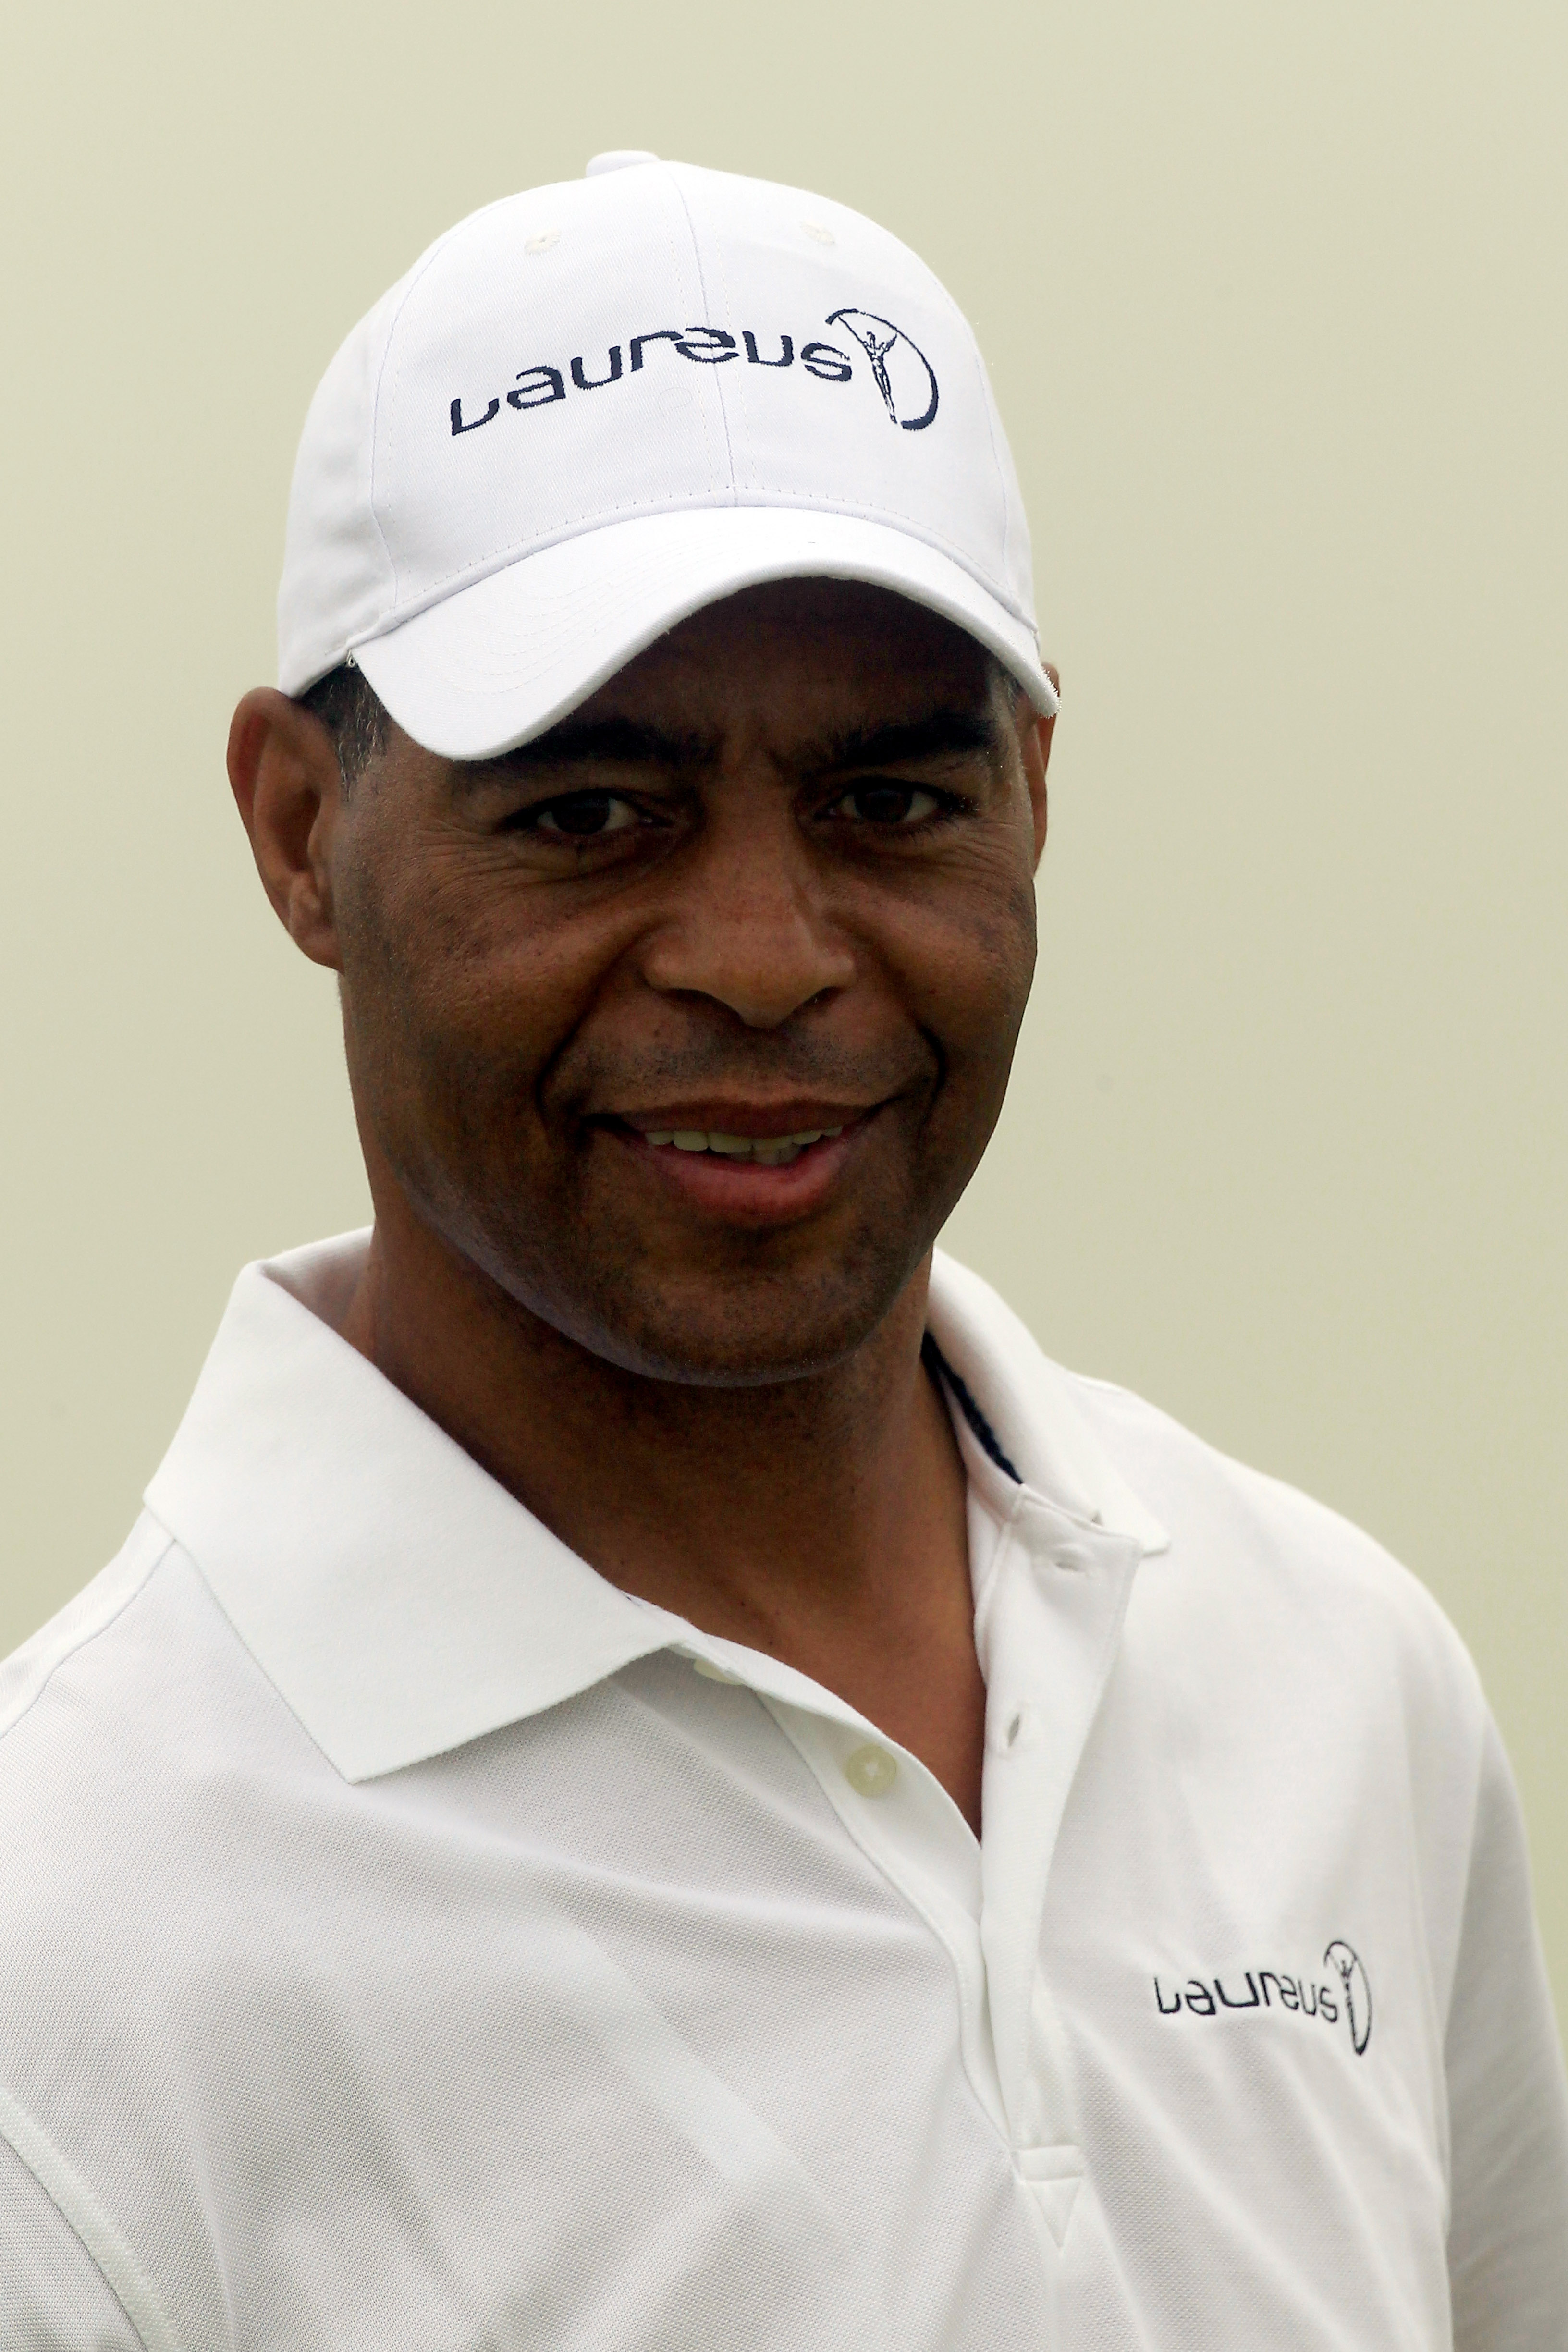 ABU DHABI, UNITED ARAB EMIRATES - MARCH 09:  Marcus Allen looks on during the Laureus World Sports Awards Golf Challenge at the Abu Dhabi Golf Club on March 9, 2010 in Abu Dhabi, United Arab Emirates.  (Photo by David Cannon/Getty Images for Laureus)